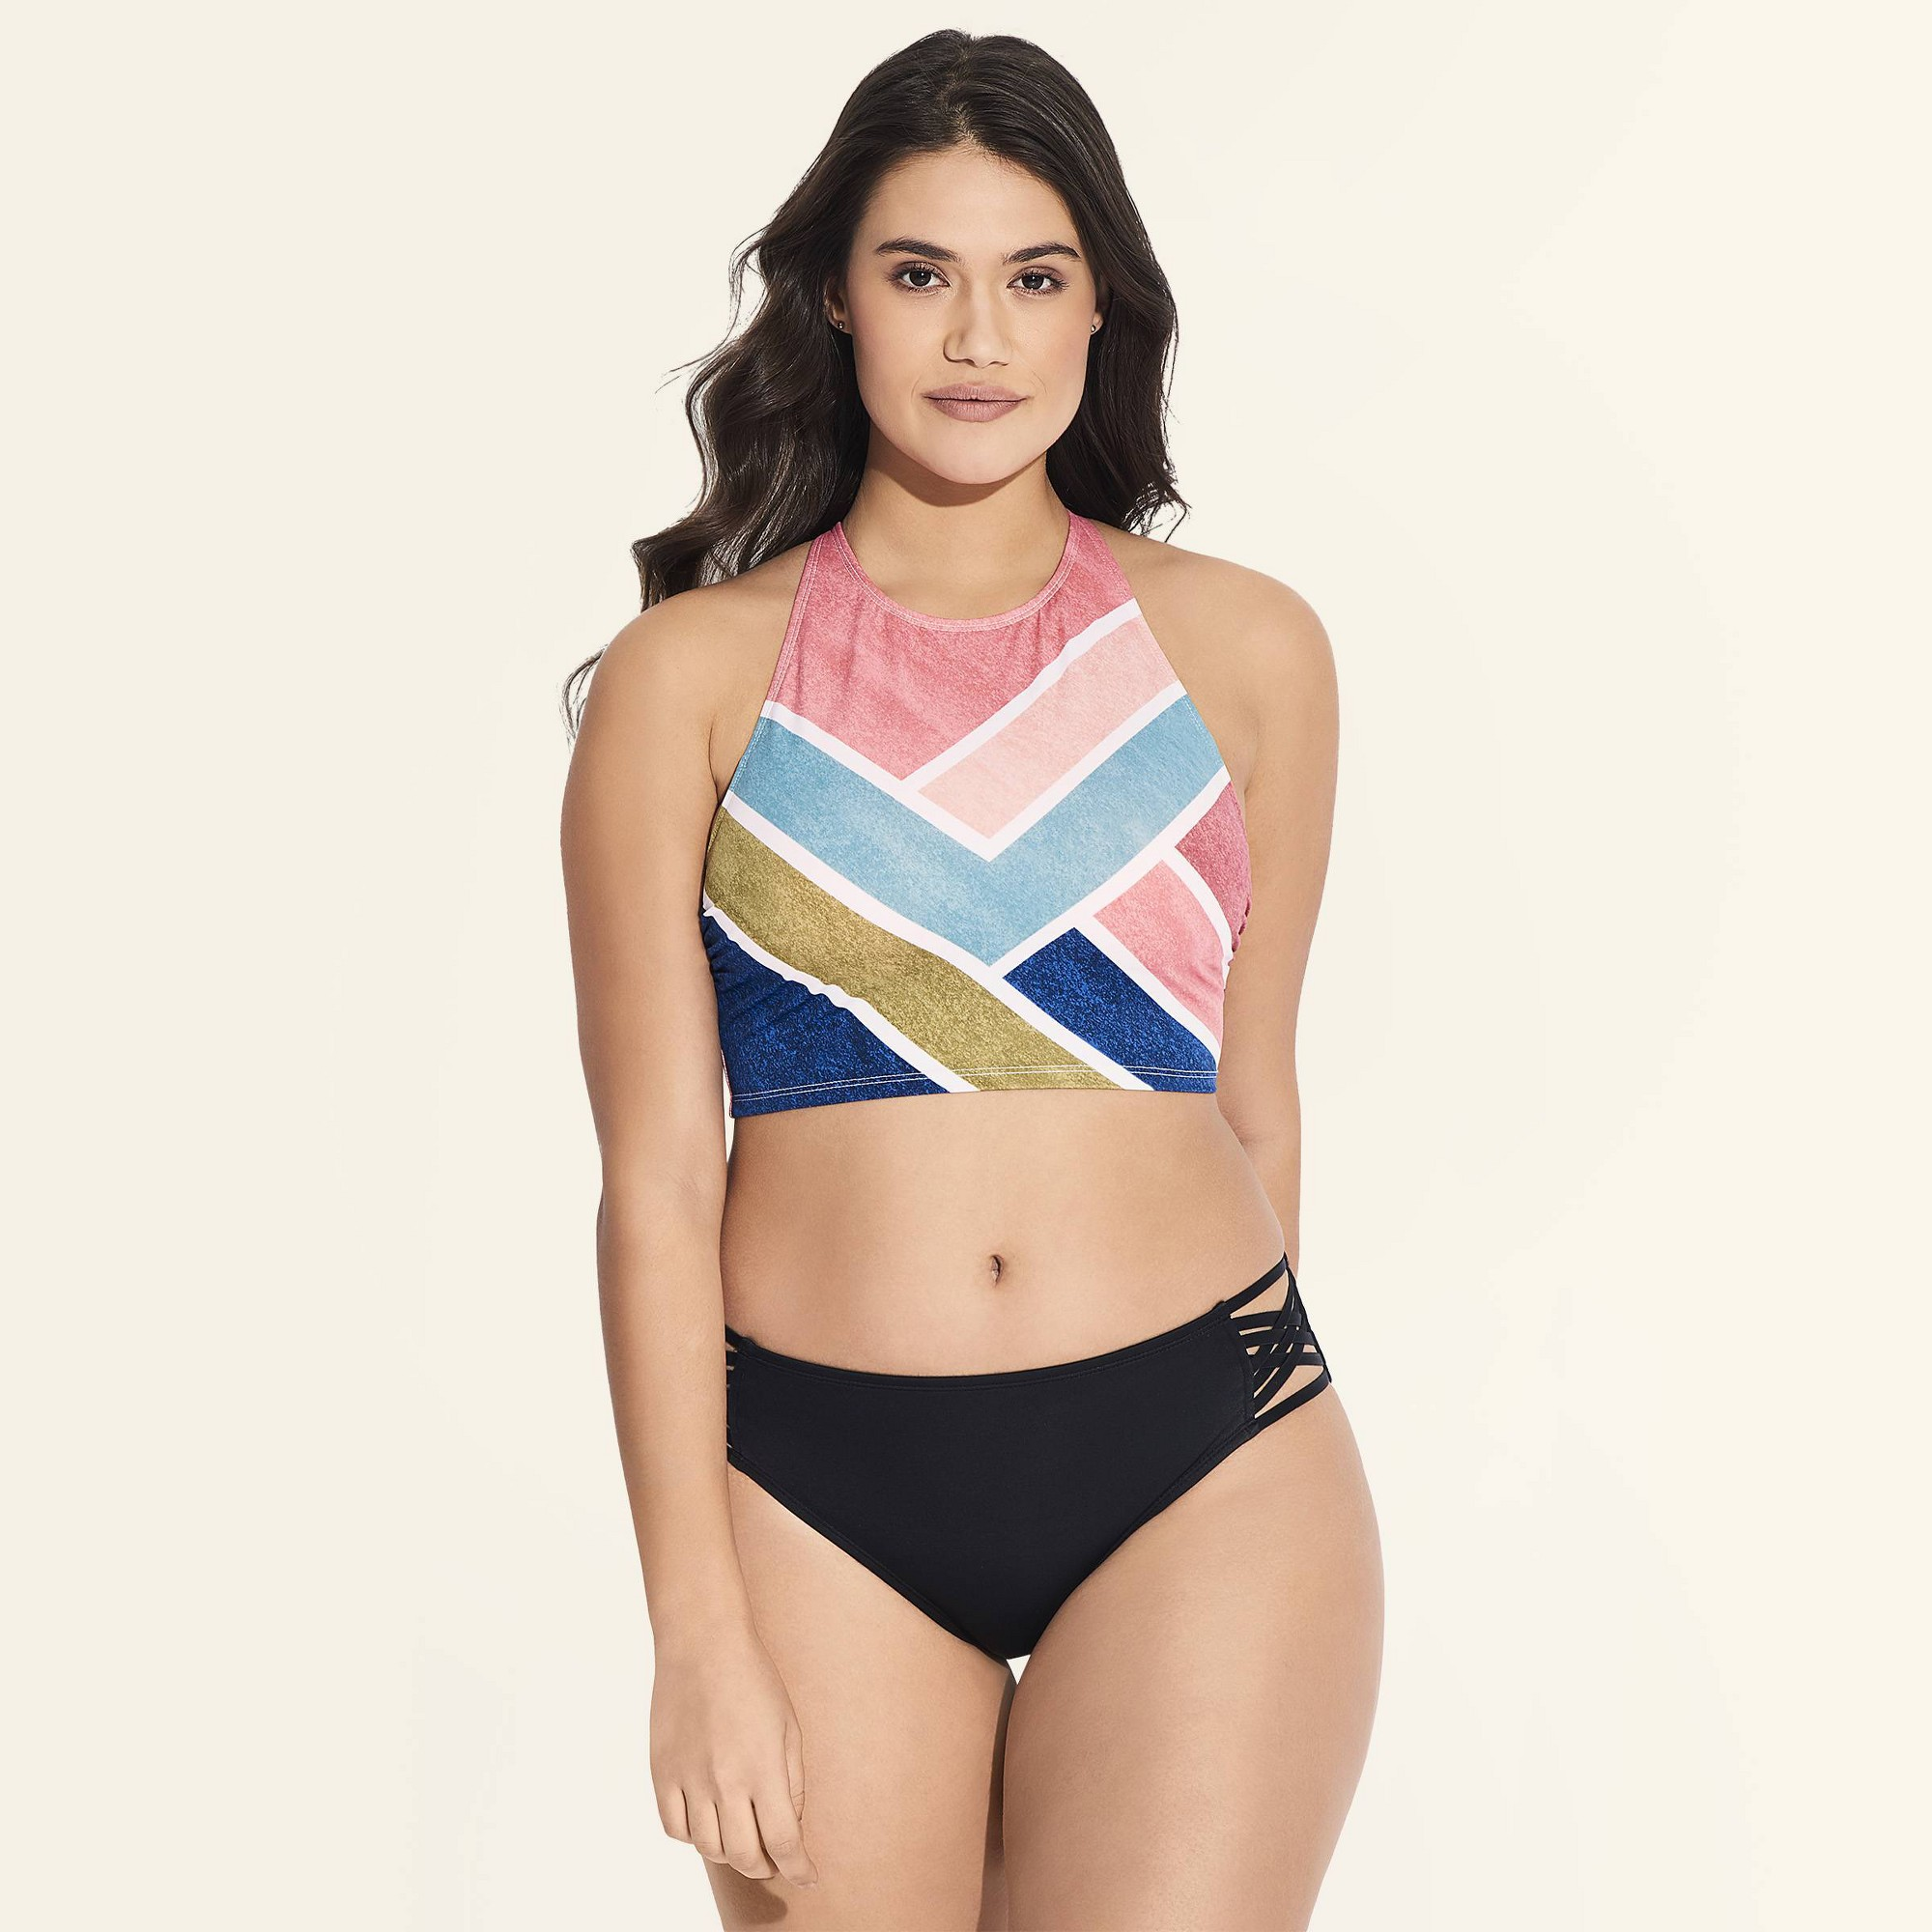 Women's Slimming Control High Neck Lace-Up Bikini Top - Beach Betty by Miracle Brands Stripe XL, MultiColored